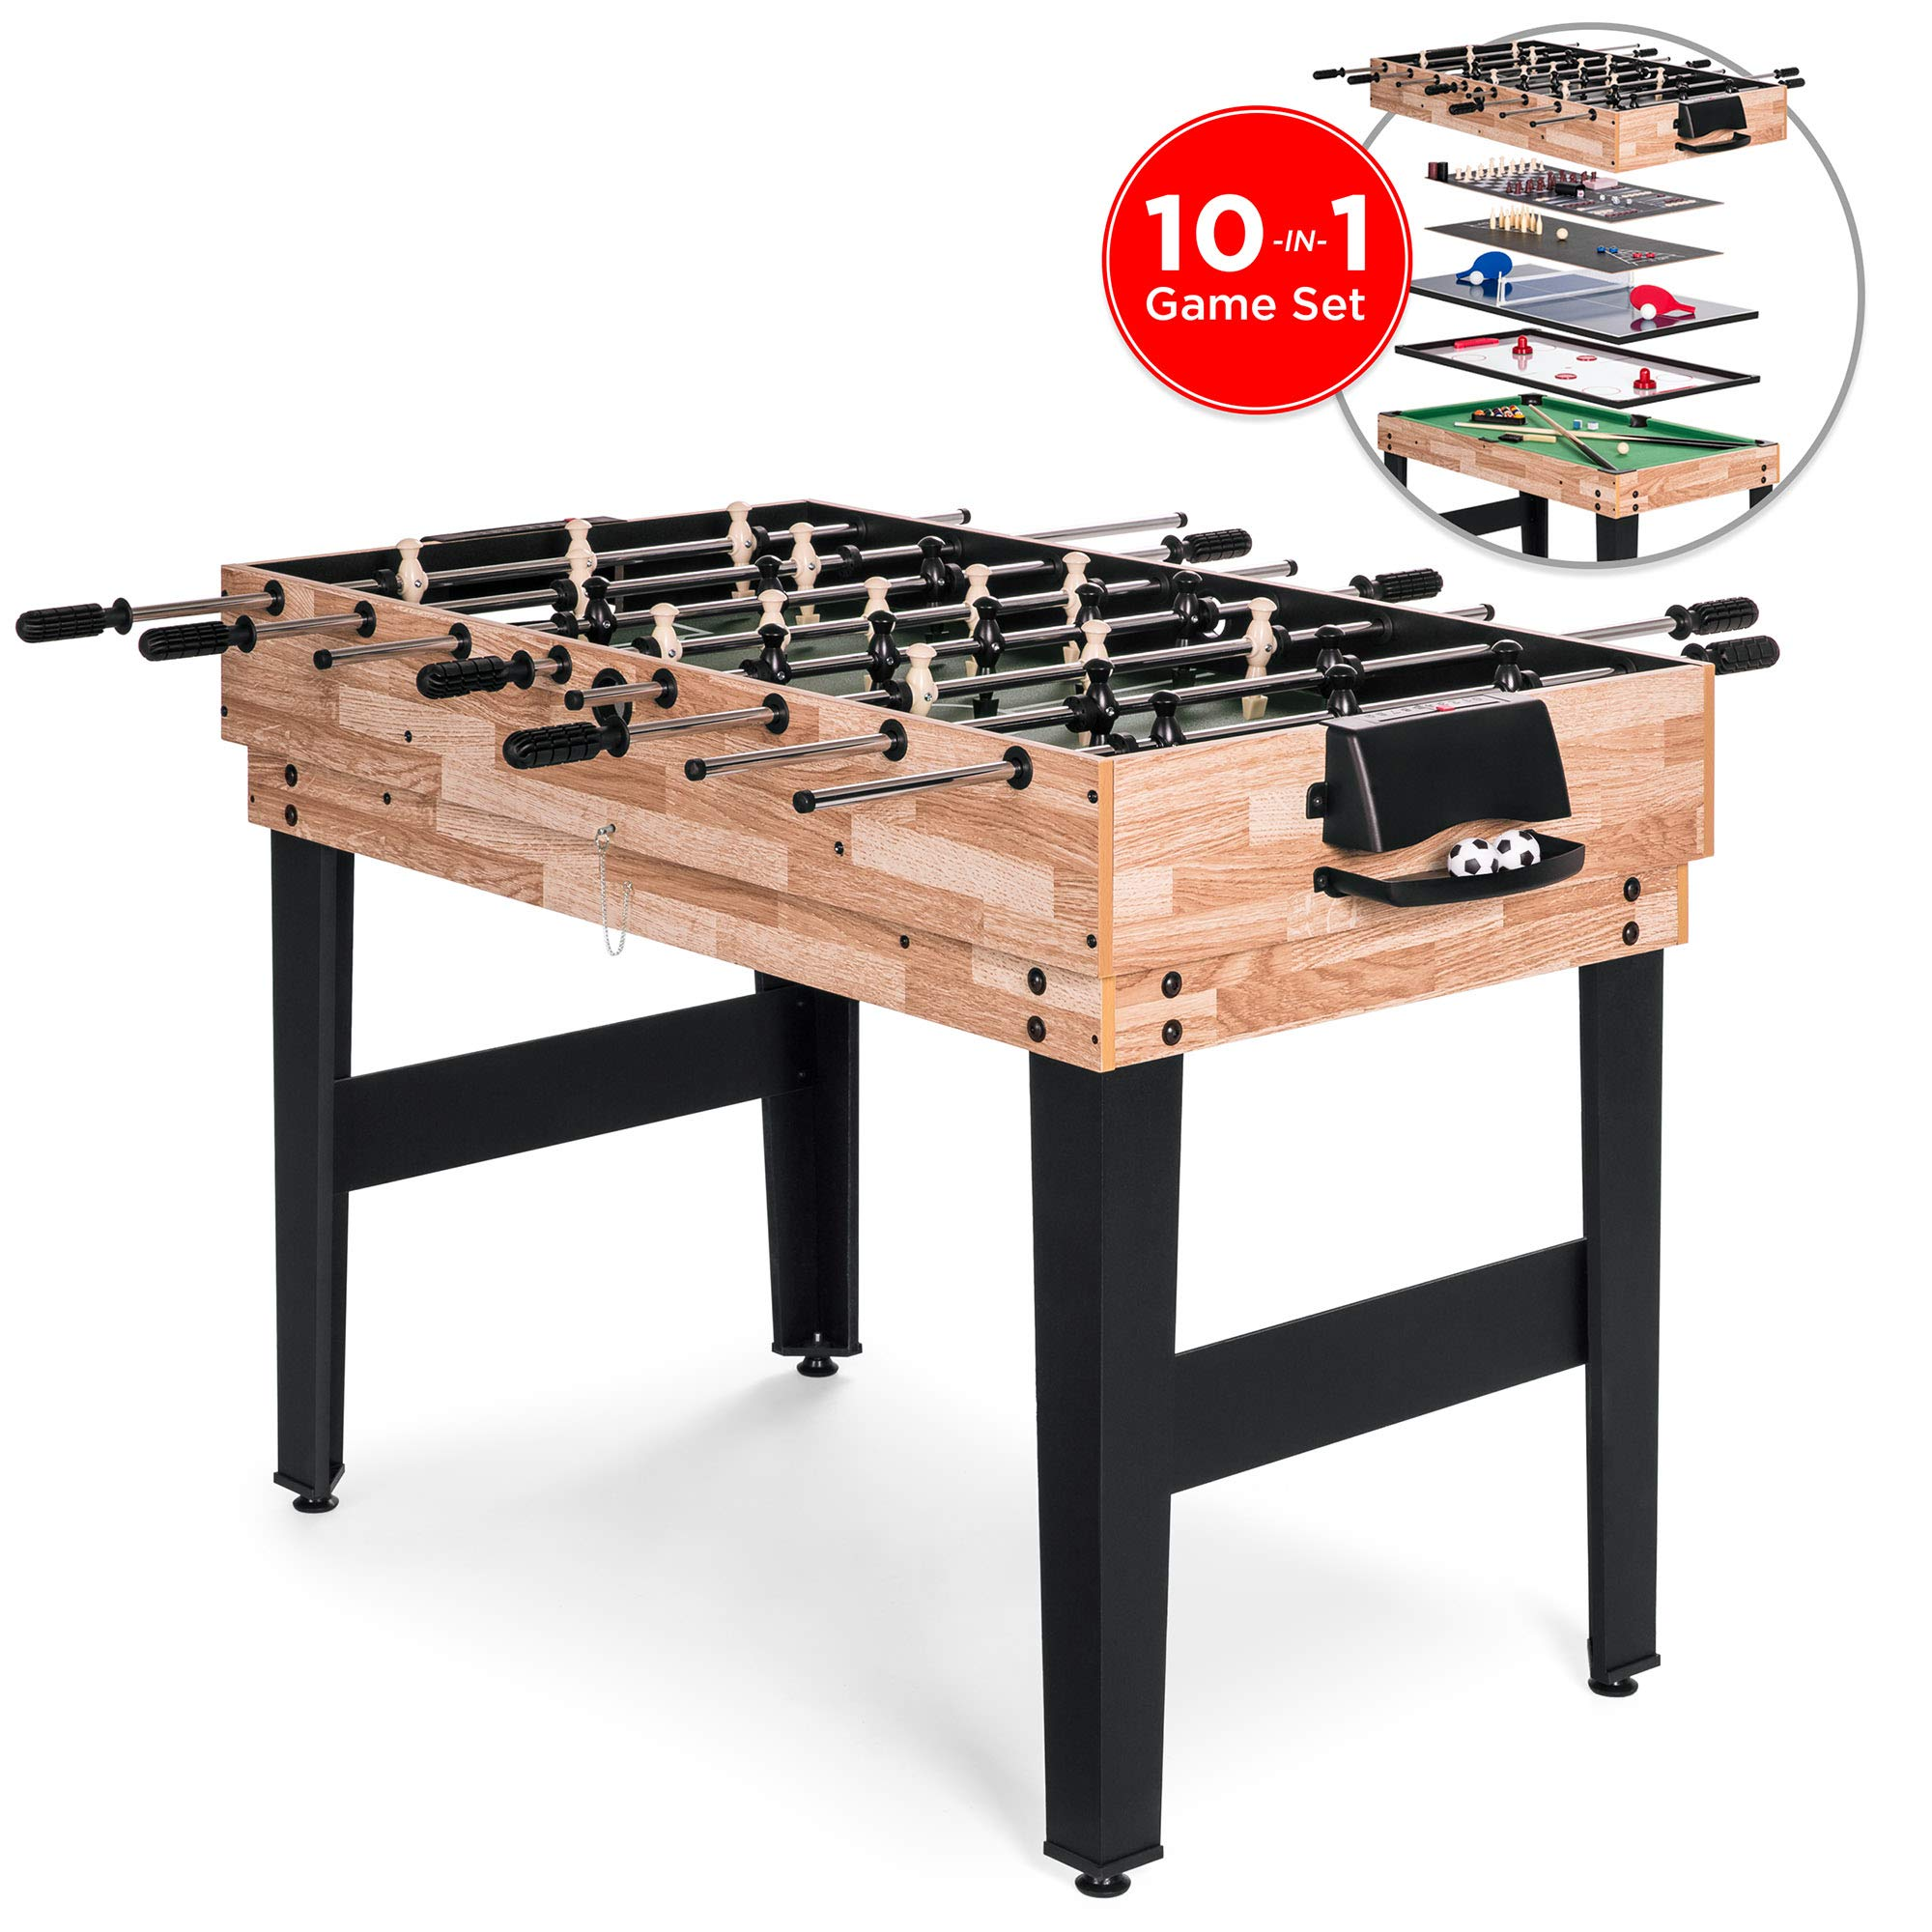 Best Choice Products 10-in-1 Game Table w/Foosball, Pool, Shuffleboard, Ping Pong, Hockey, and More by Best Choice Products